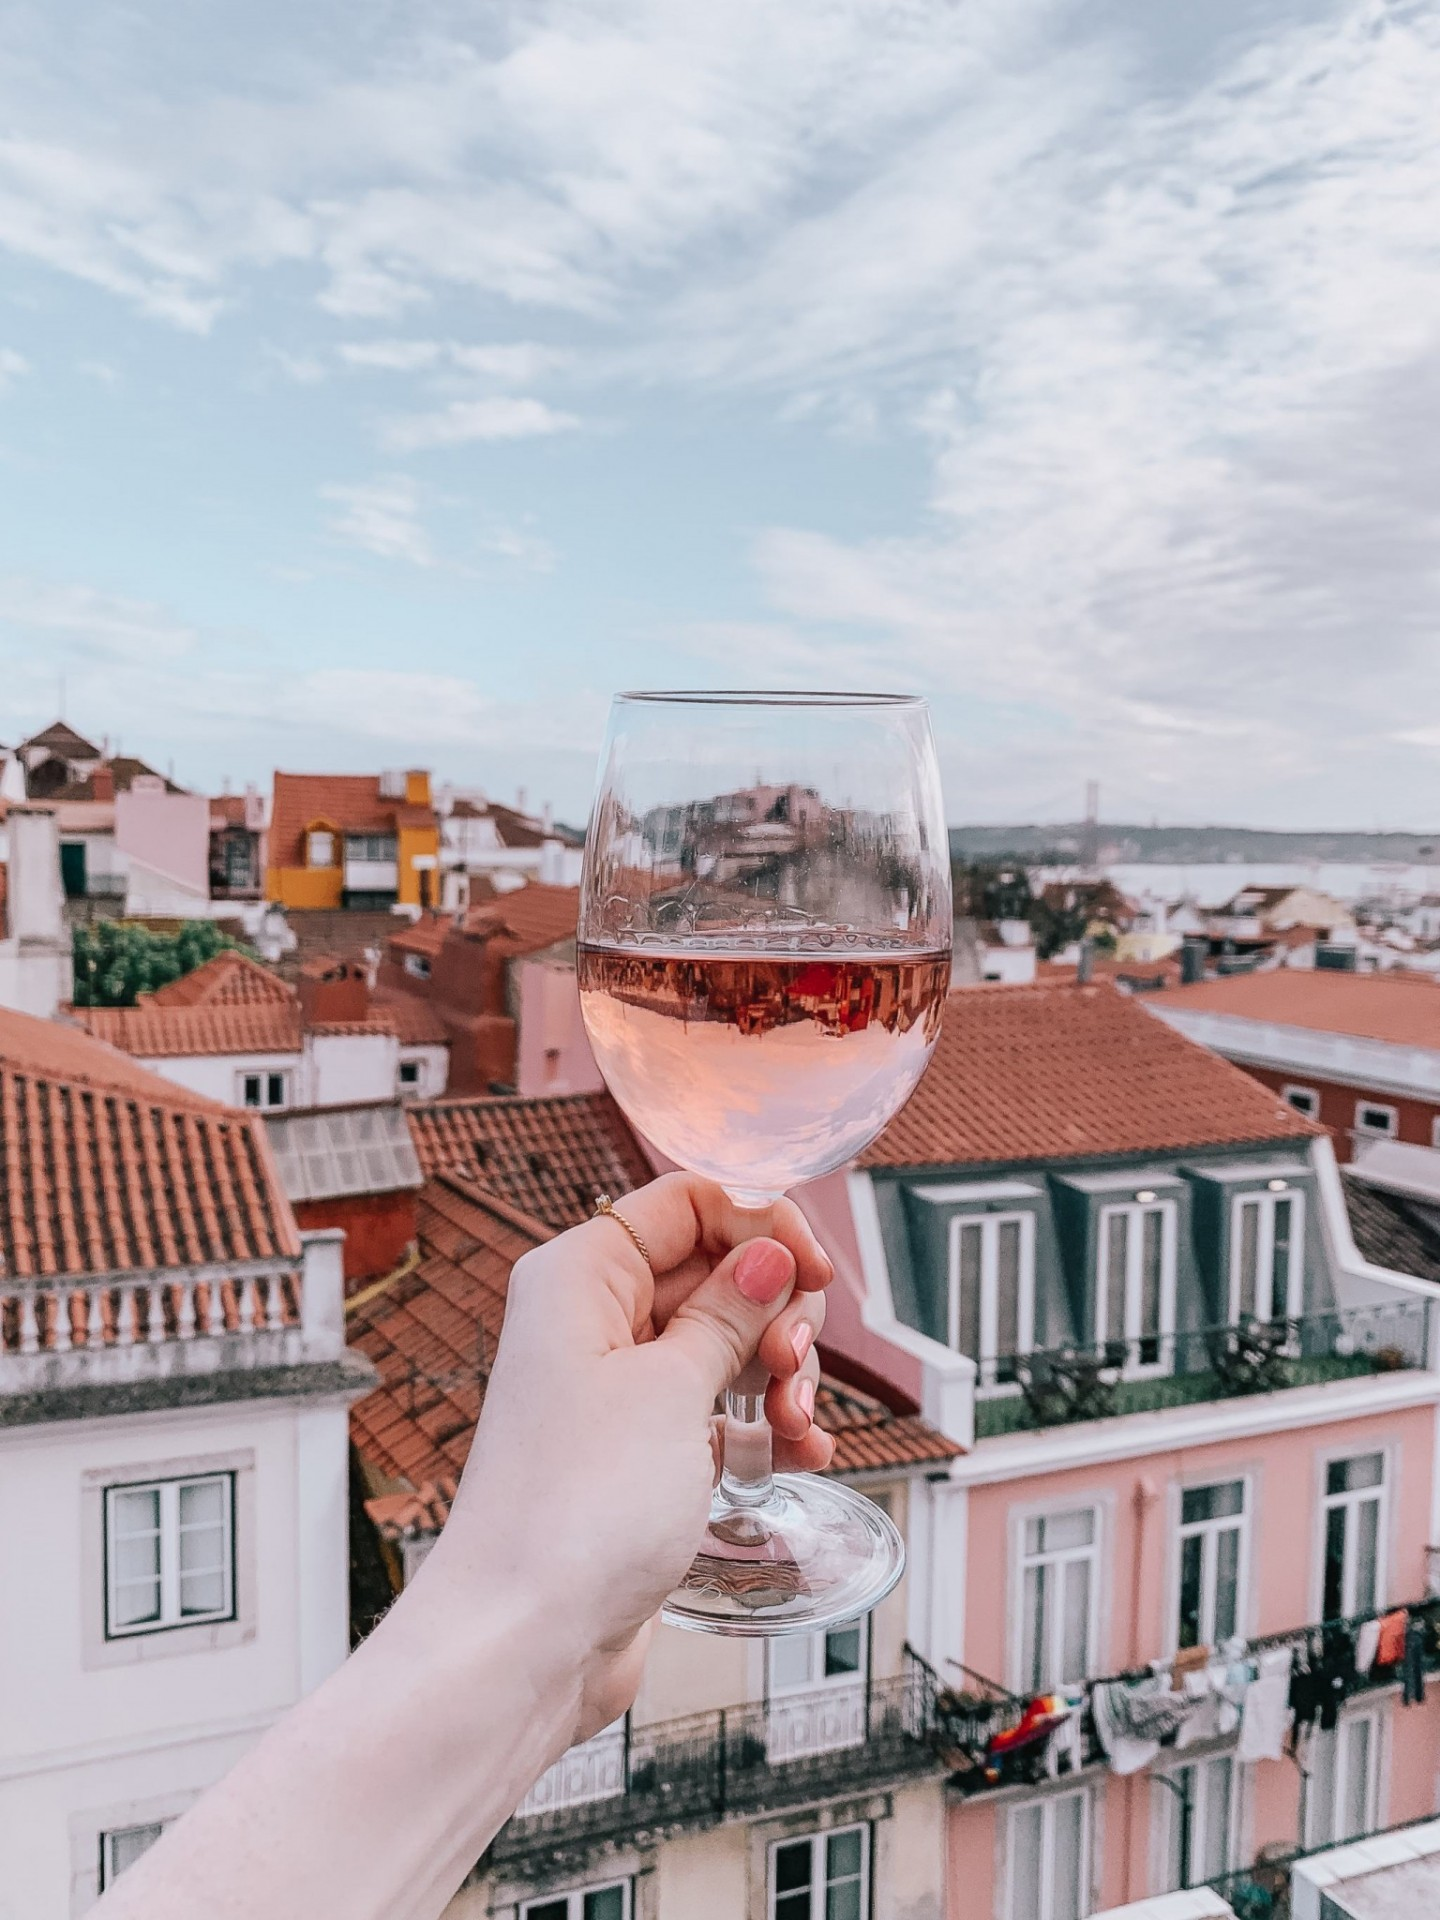 Lifestyle blogger Mollie Moore shares a Lisbon travel guide | Visiting Portugal: The Ultimate Lisbon Travel Guide & the Best Things to Do by popular London travel blogger, Mollie Moore: image of a woman's hand holding a glass of wine with the reflection of Lisbon, Portugal in it.